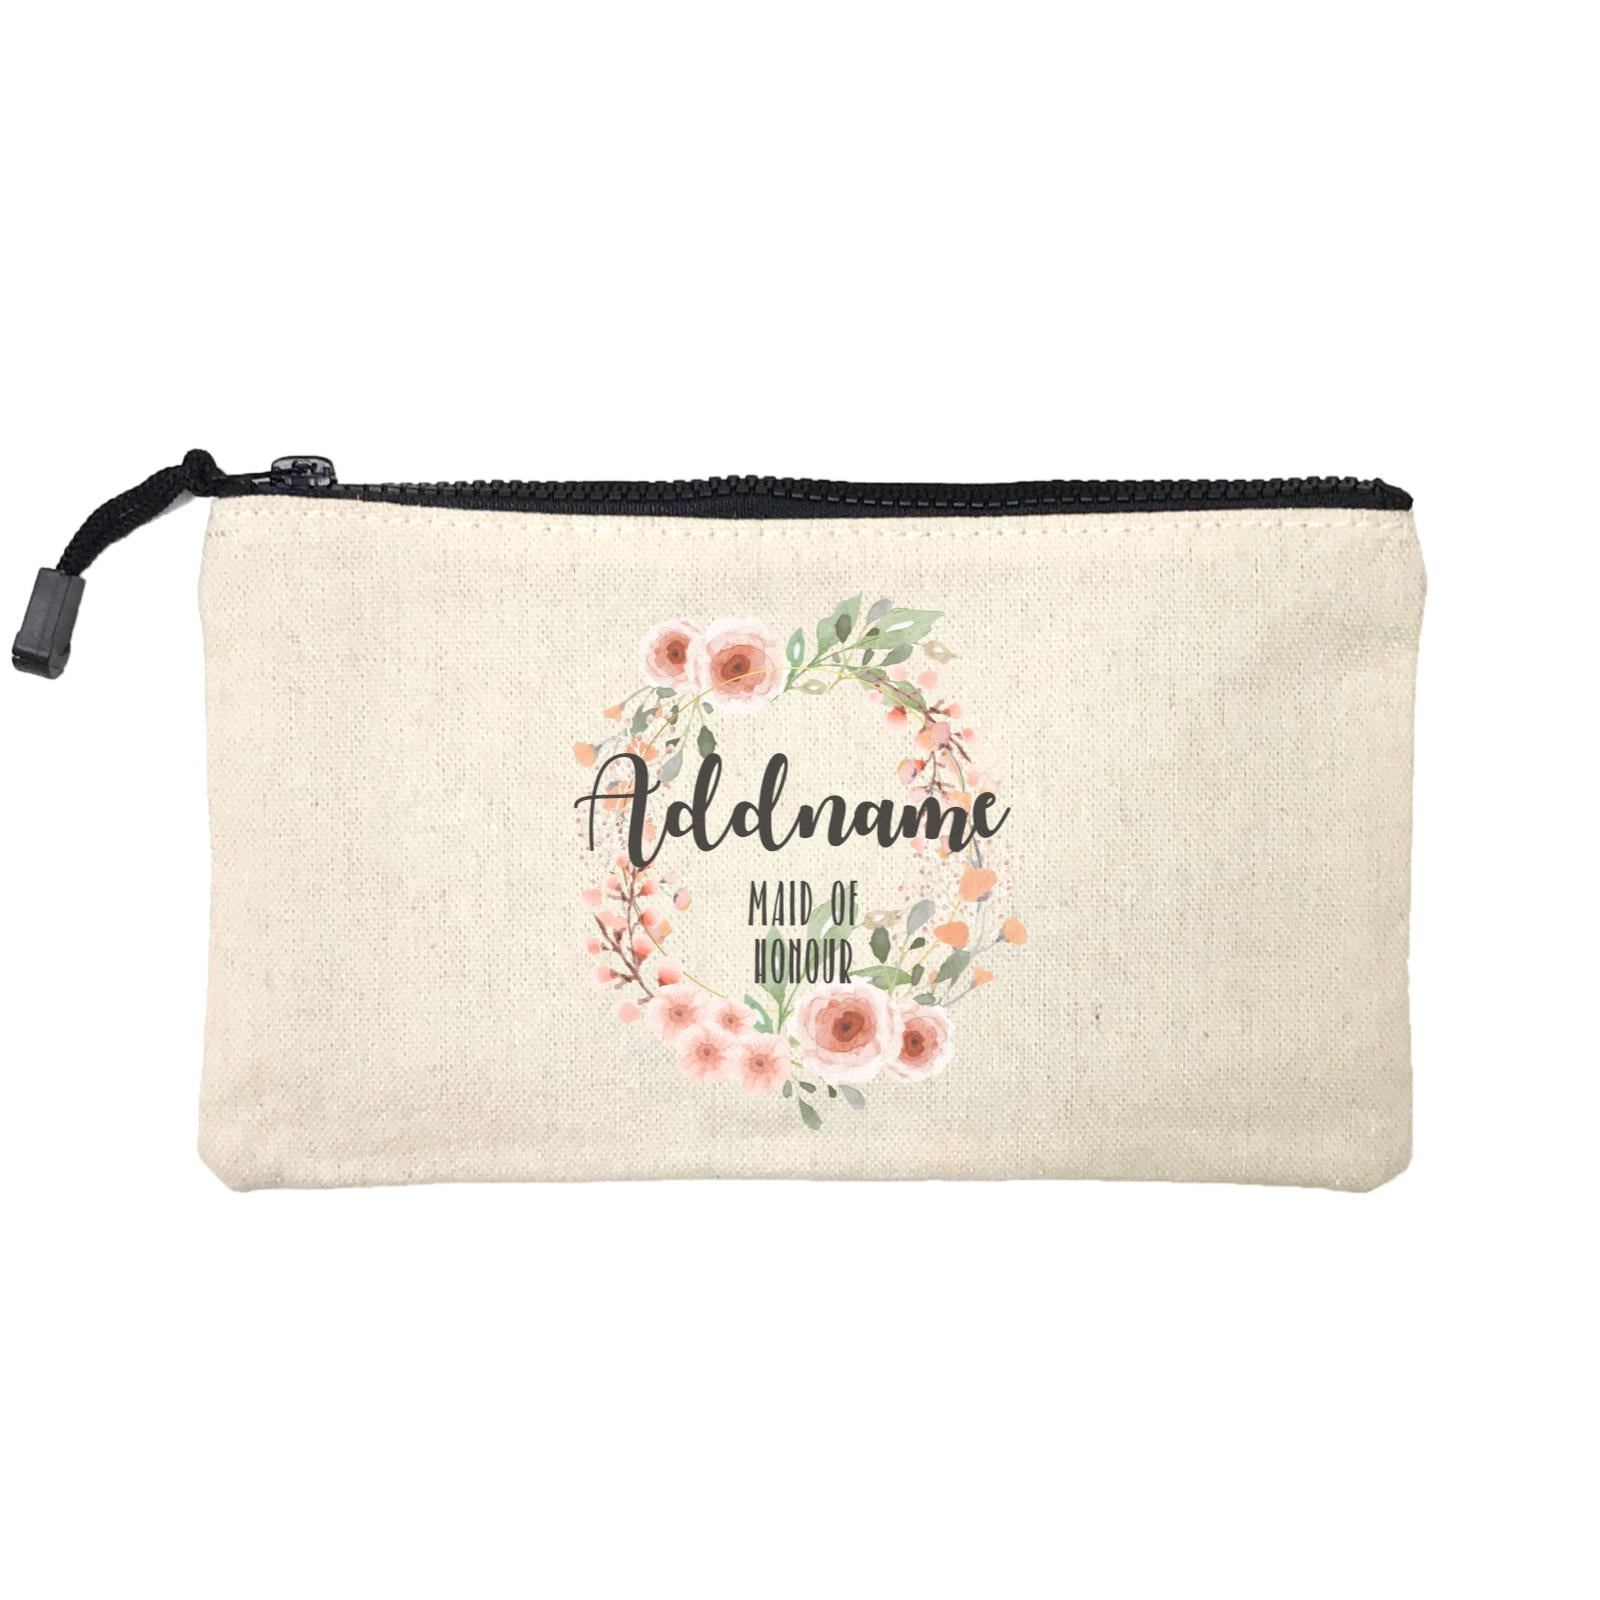 Bridesmaid Floral Sweet 2 Watercolour Flower Wreath Maid Of Honour Addname Mini Accessories Stationery Pouch